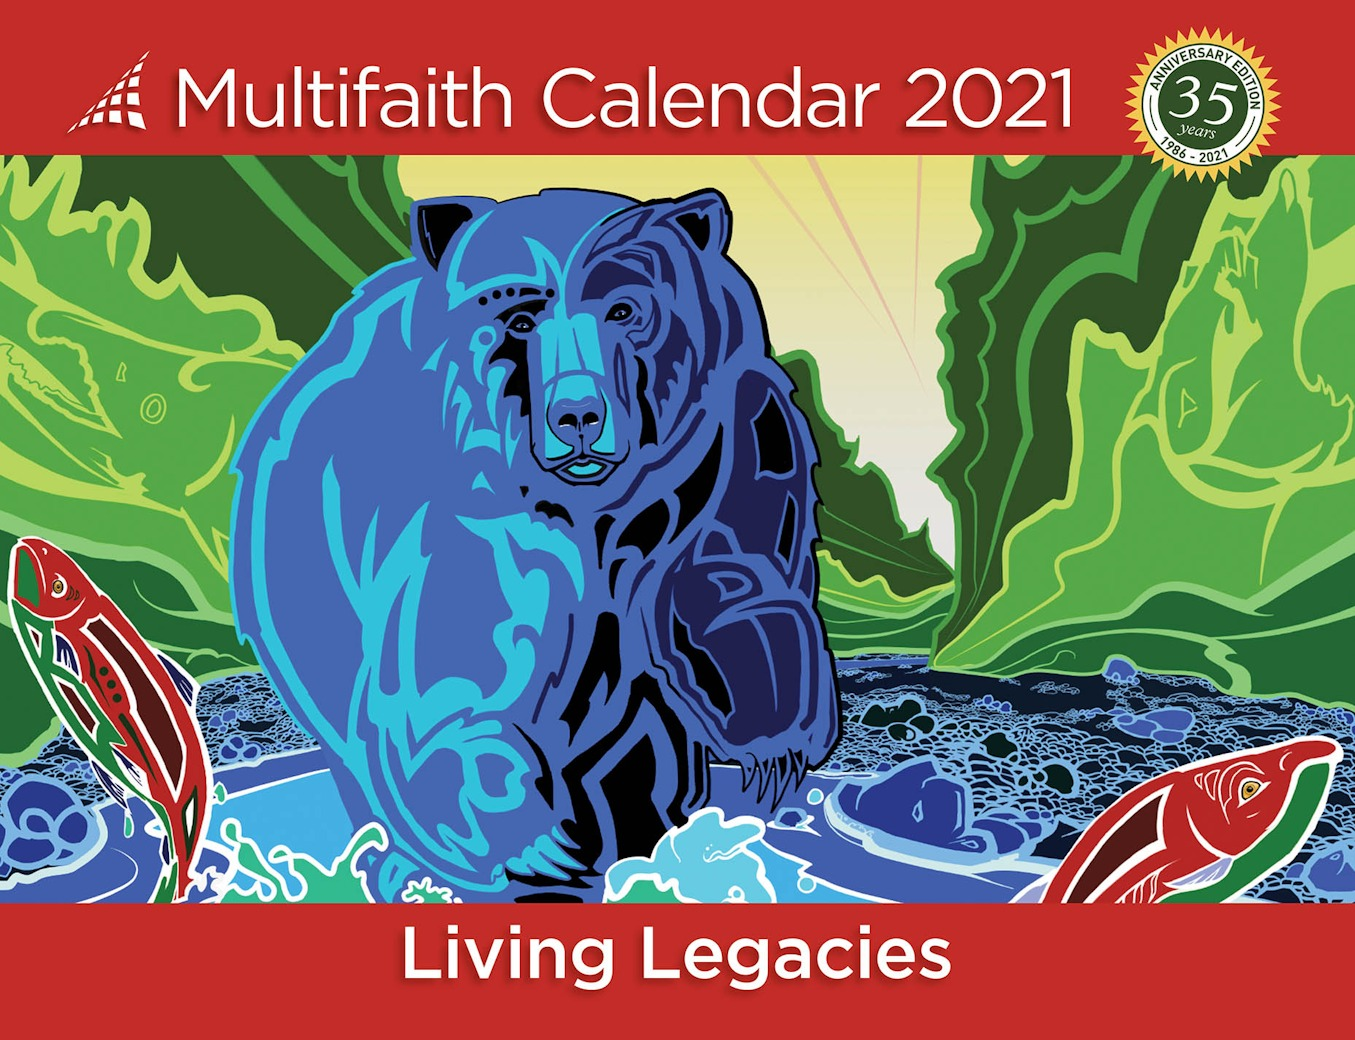 Multifaith Calendar 2022: Artists' Call for Submissions